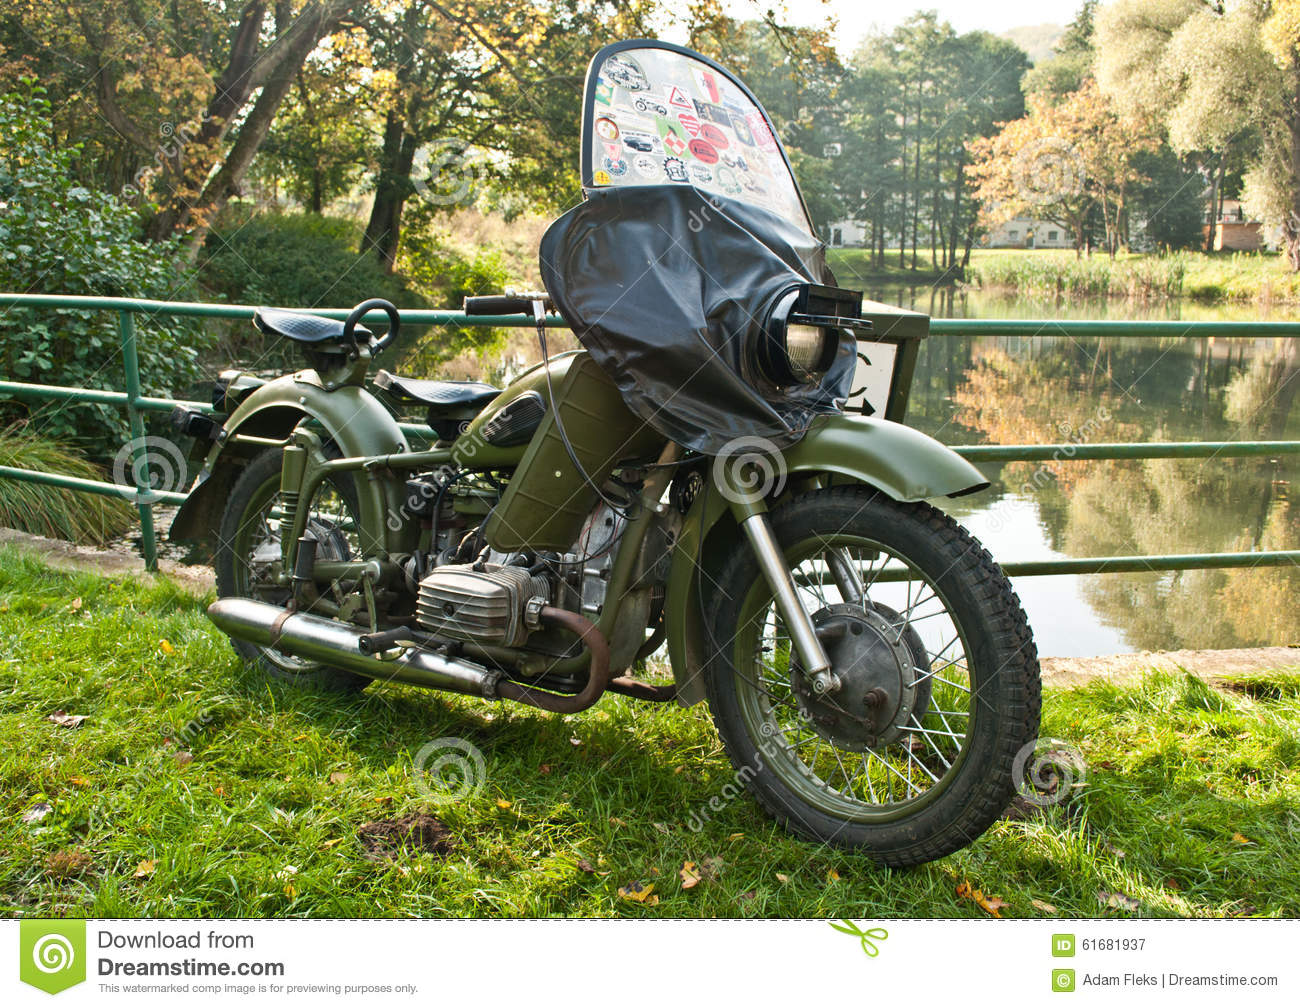 Soviet motorcycles. Motorcycles of the USSR (photo)